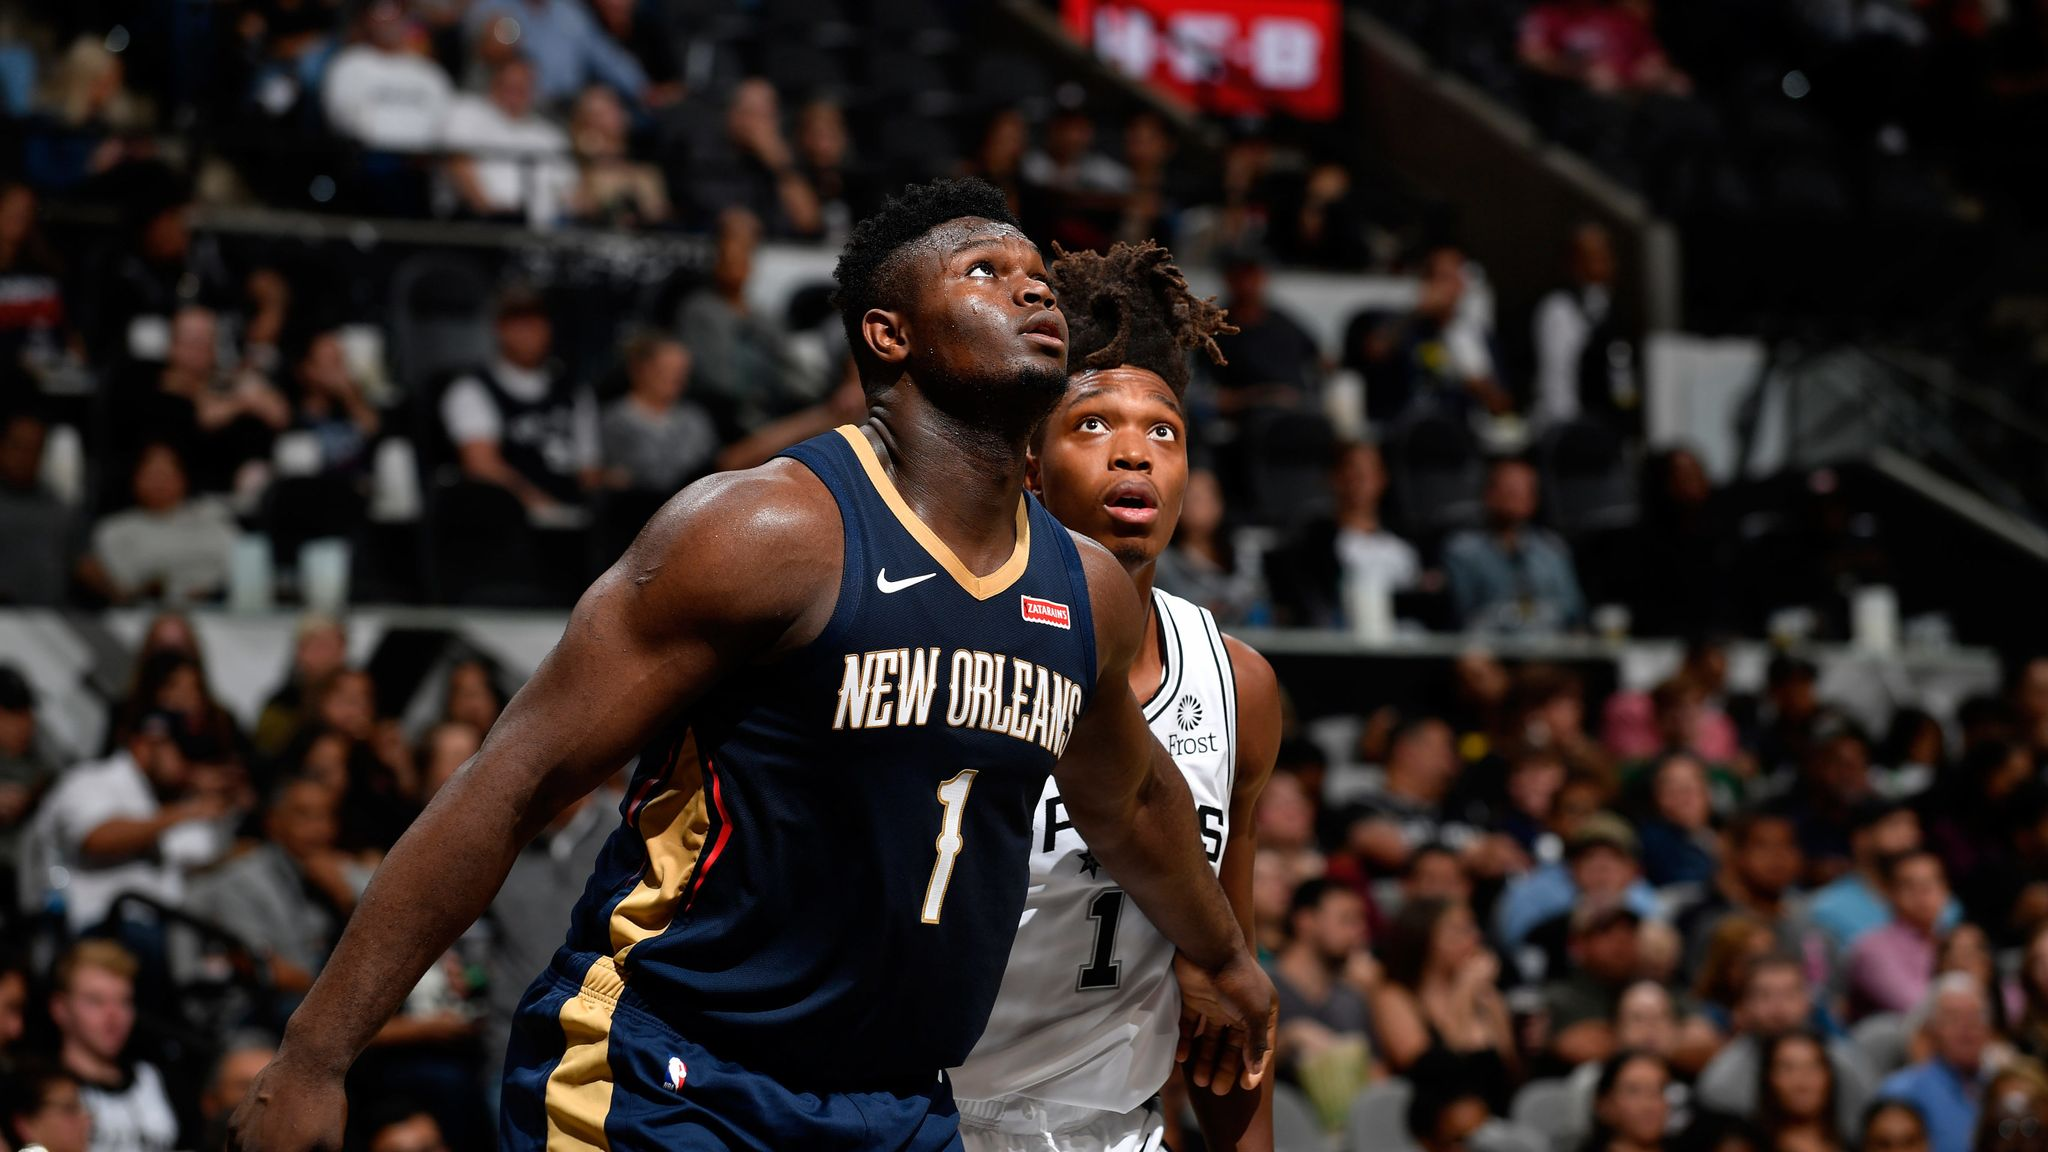 New Orleans Pelicans uncertain when Zion Williamson will be cleared to play again